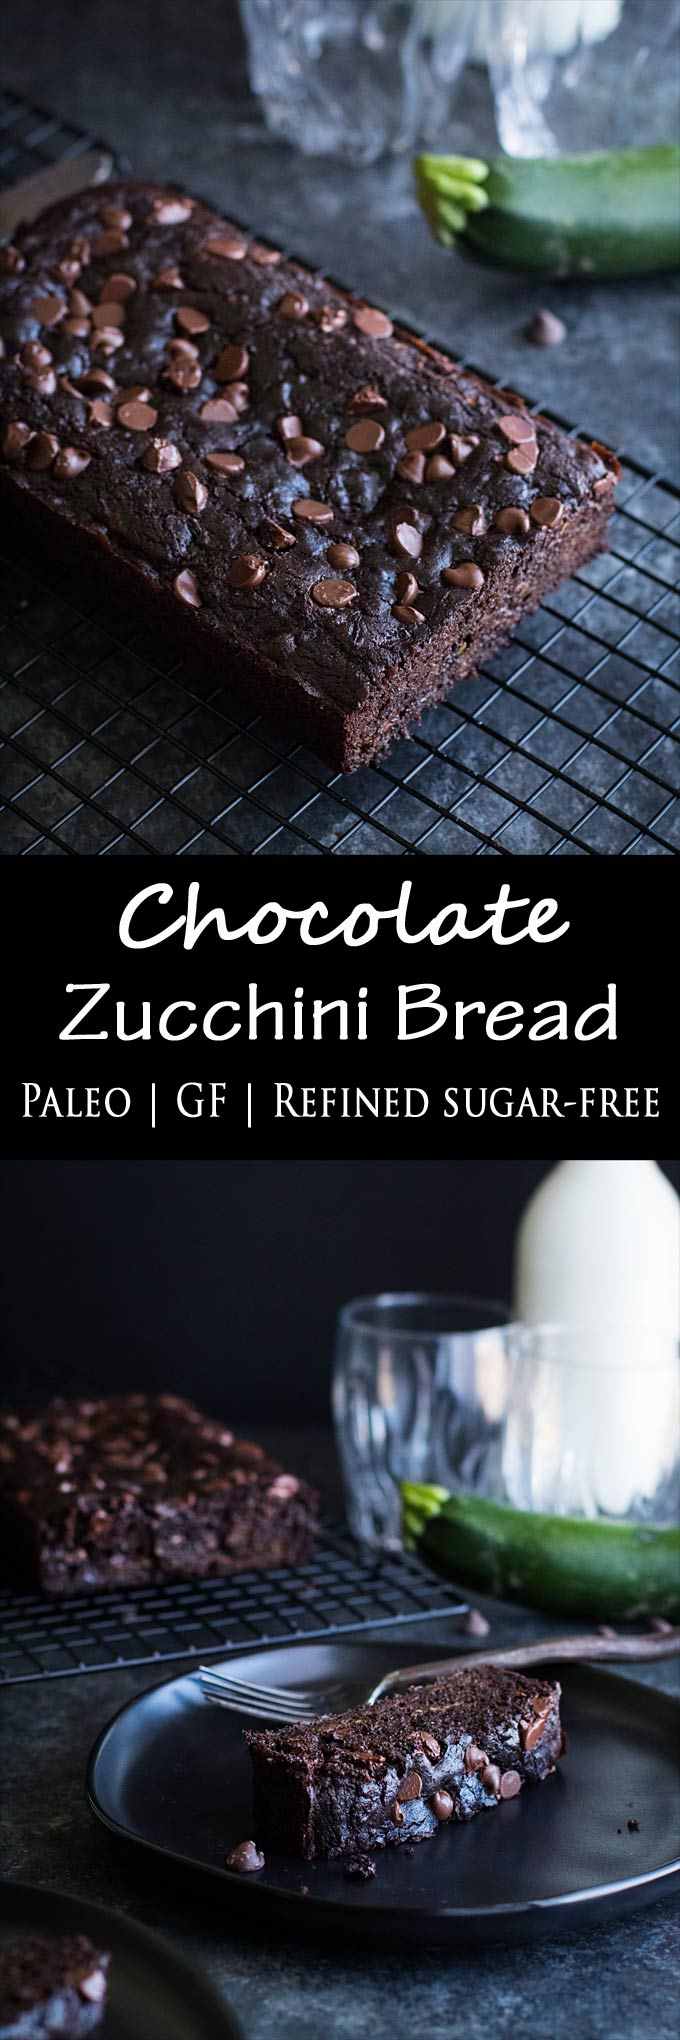 This double chocolate zucchini bread is sinfully rich, fudgey, paleo, gluten-free, and refined sugar free. Enjoy a treat with a fraction of the guilt!